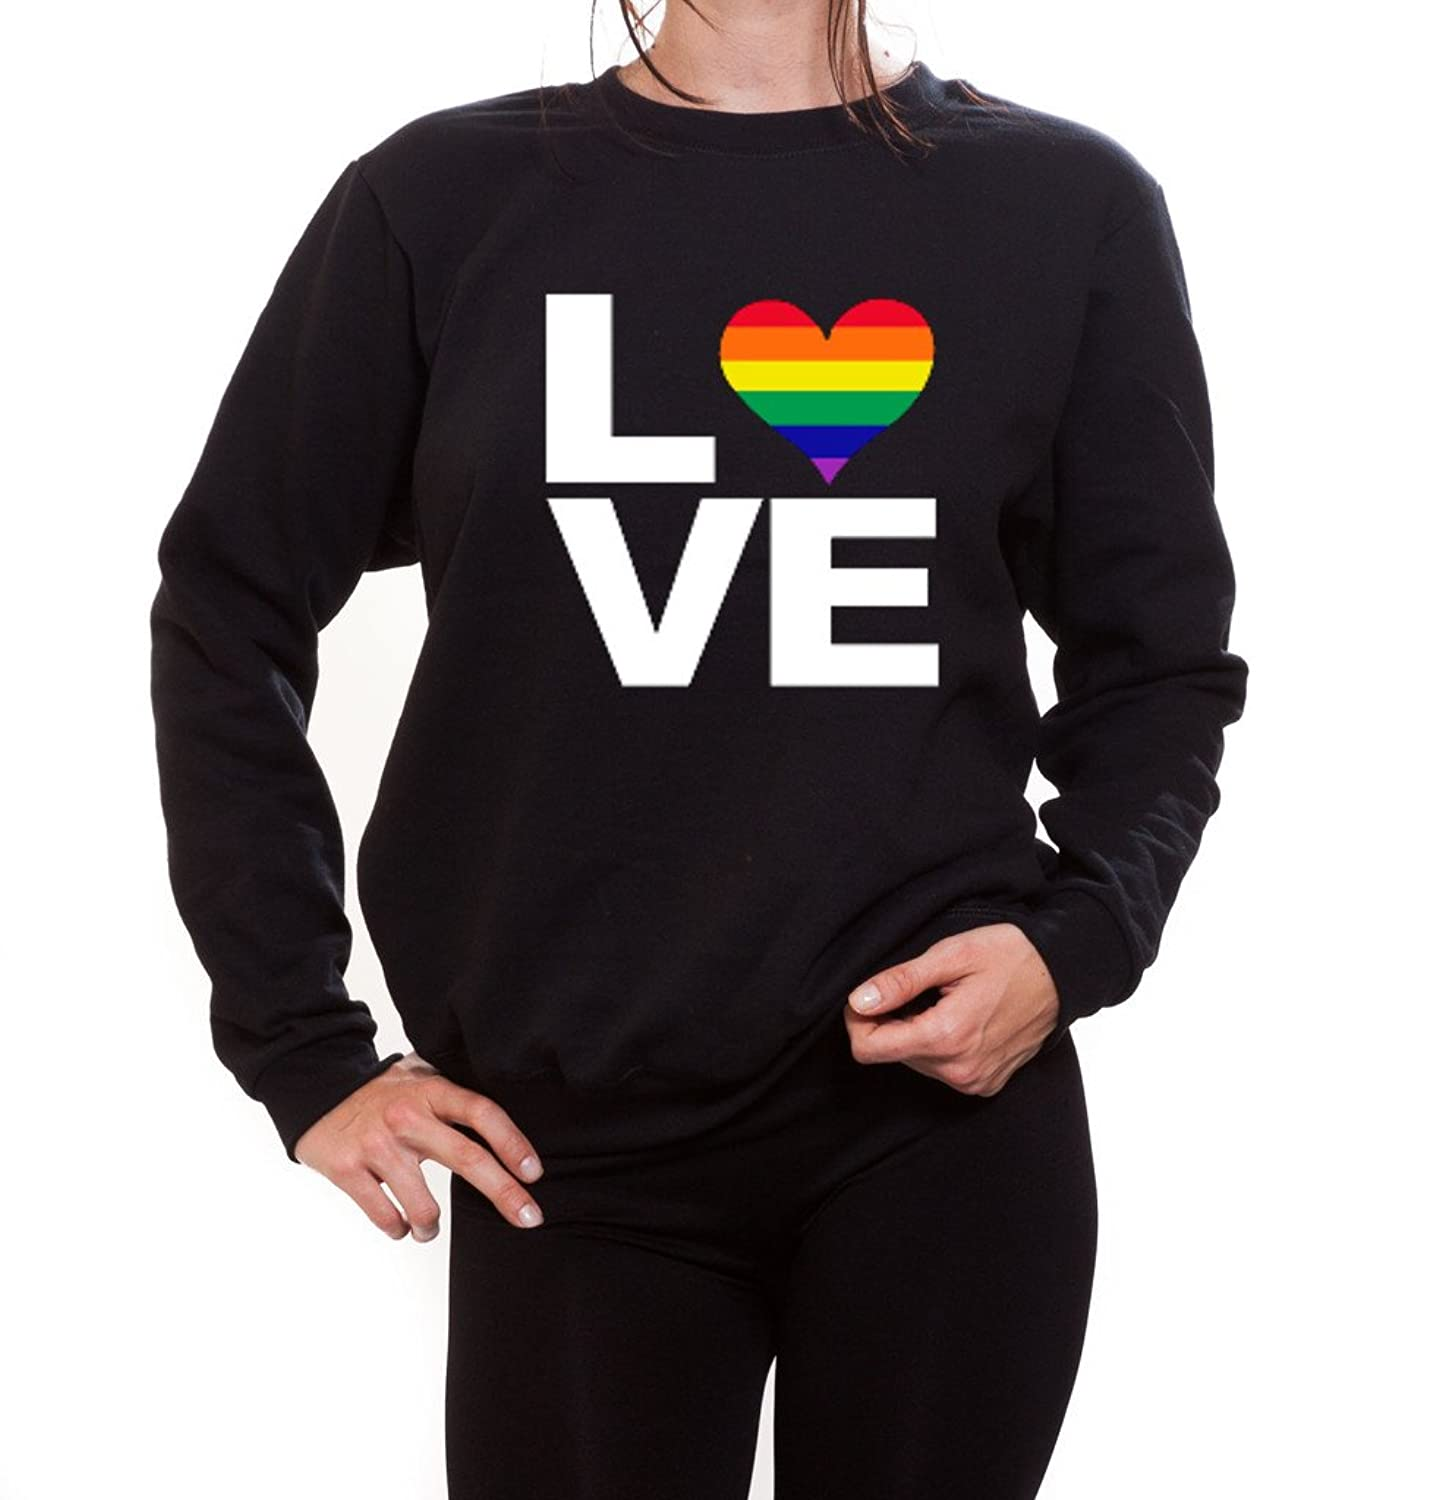 Women's Love - Rainbow Heart Gay & Lesbian Equal Rights Pride Crewneck Sweater